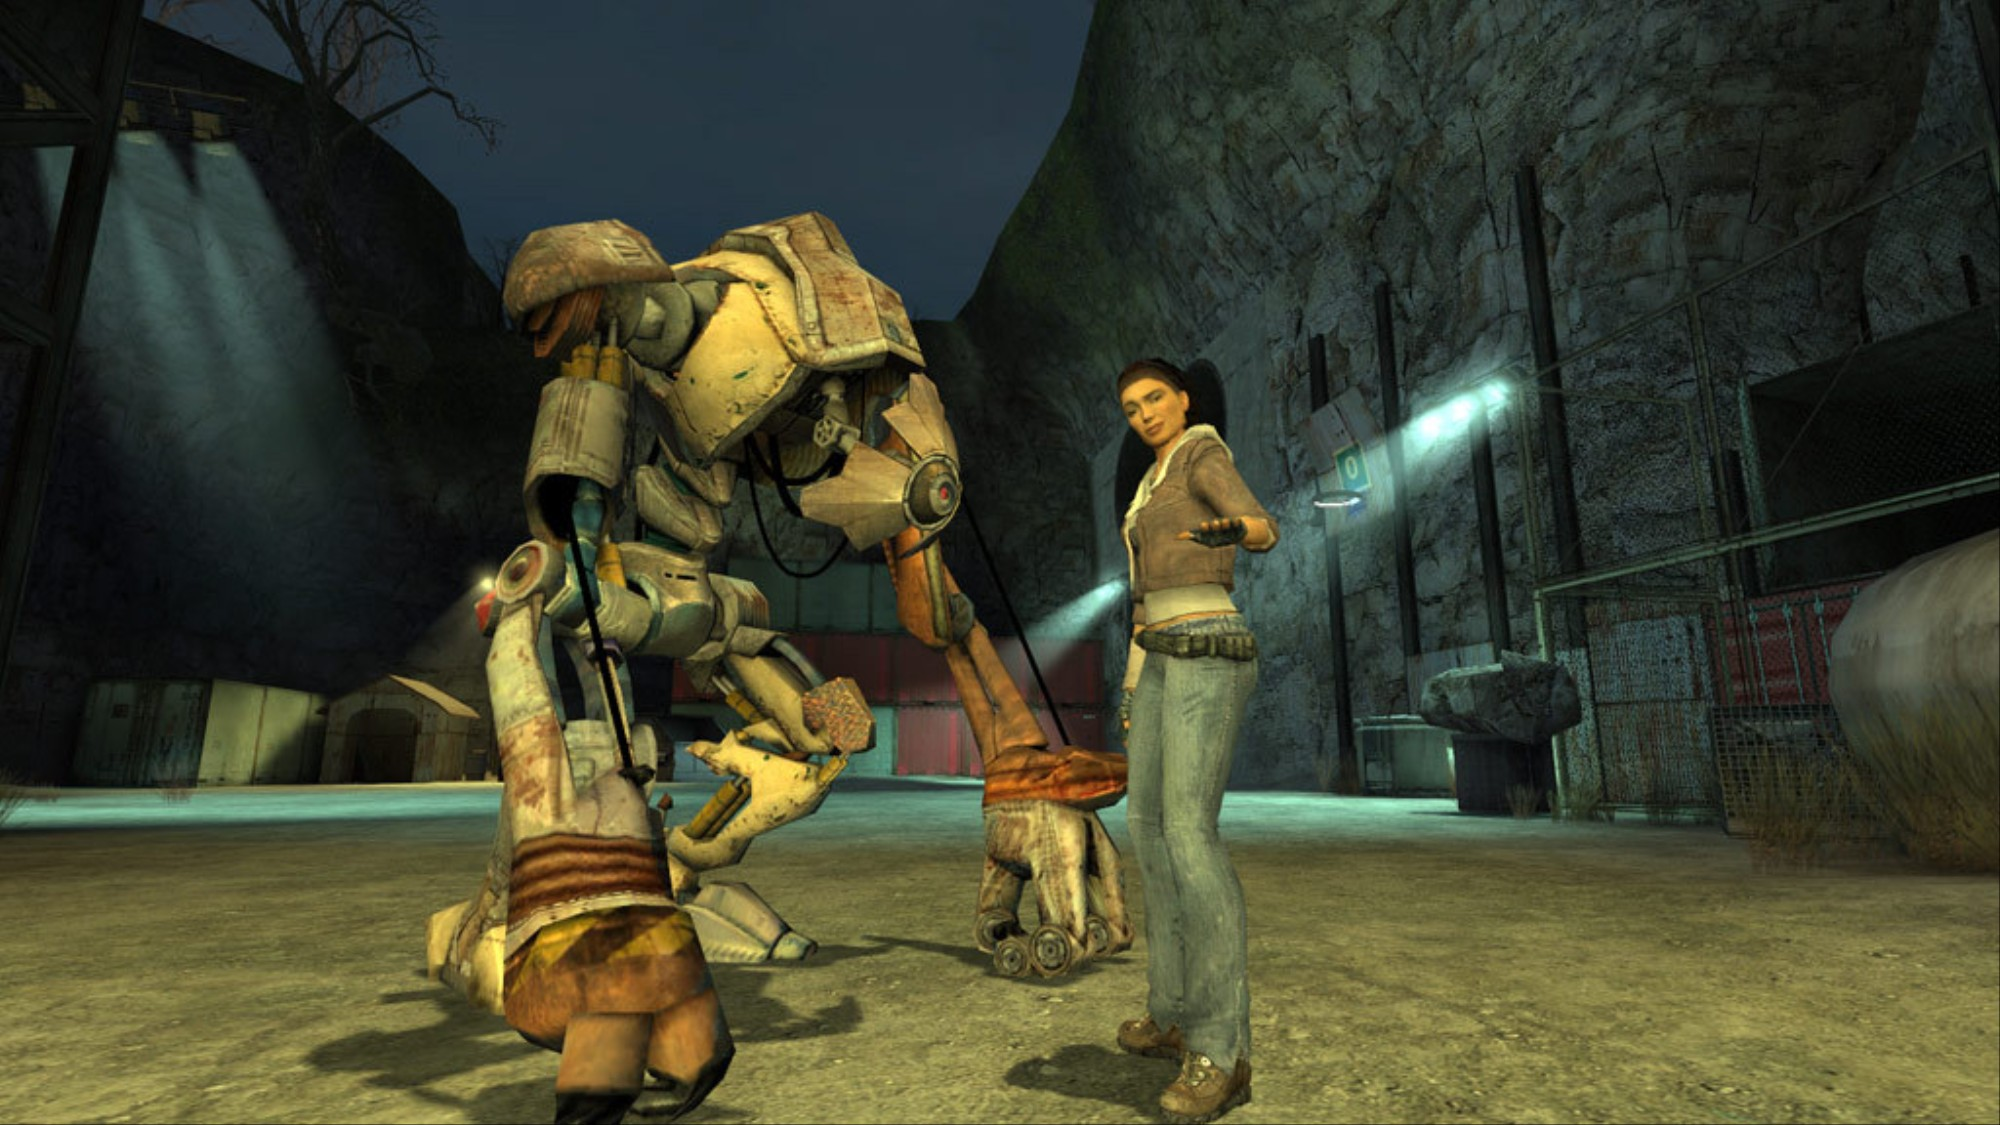 The Unofficial 'Half-Life 2: Episode 3' Story Helps Explain